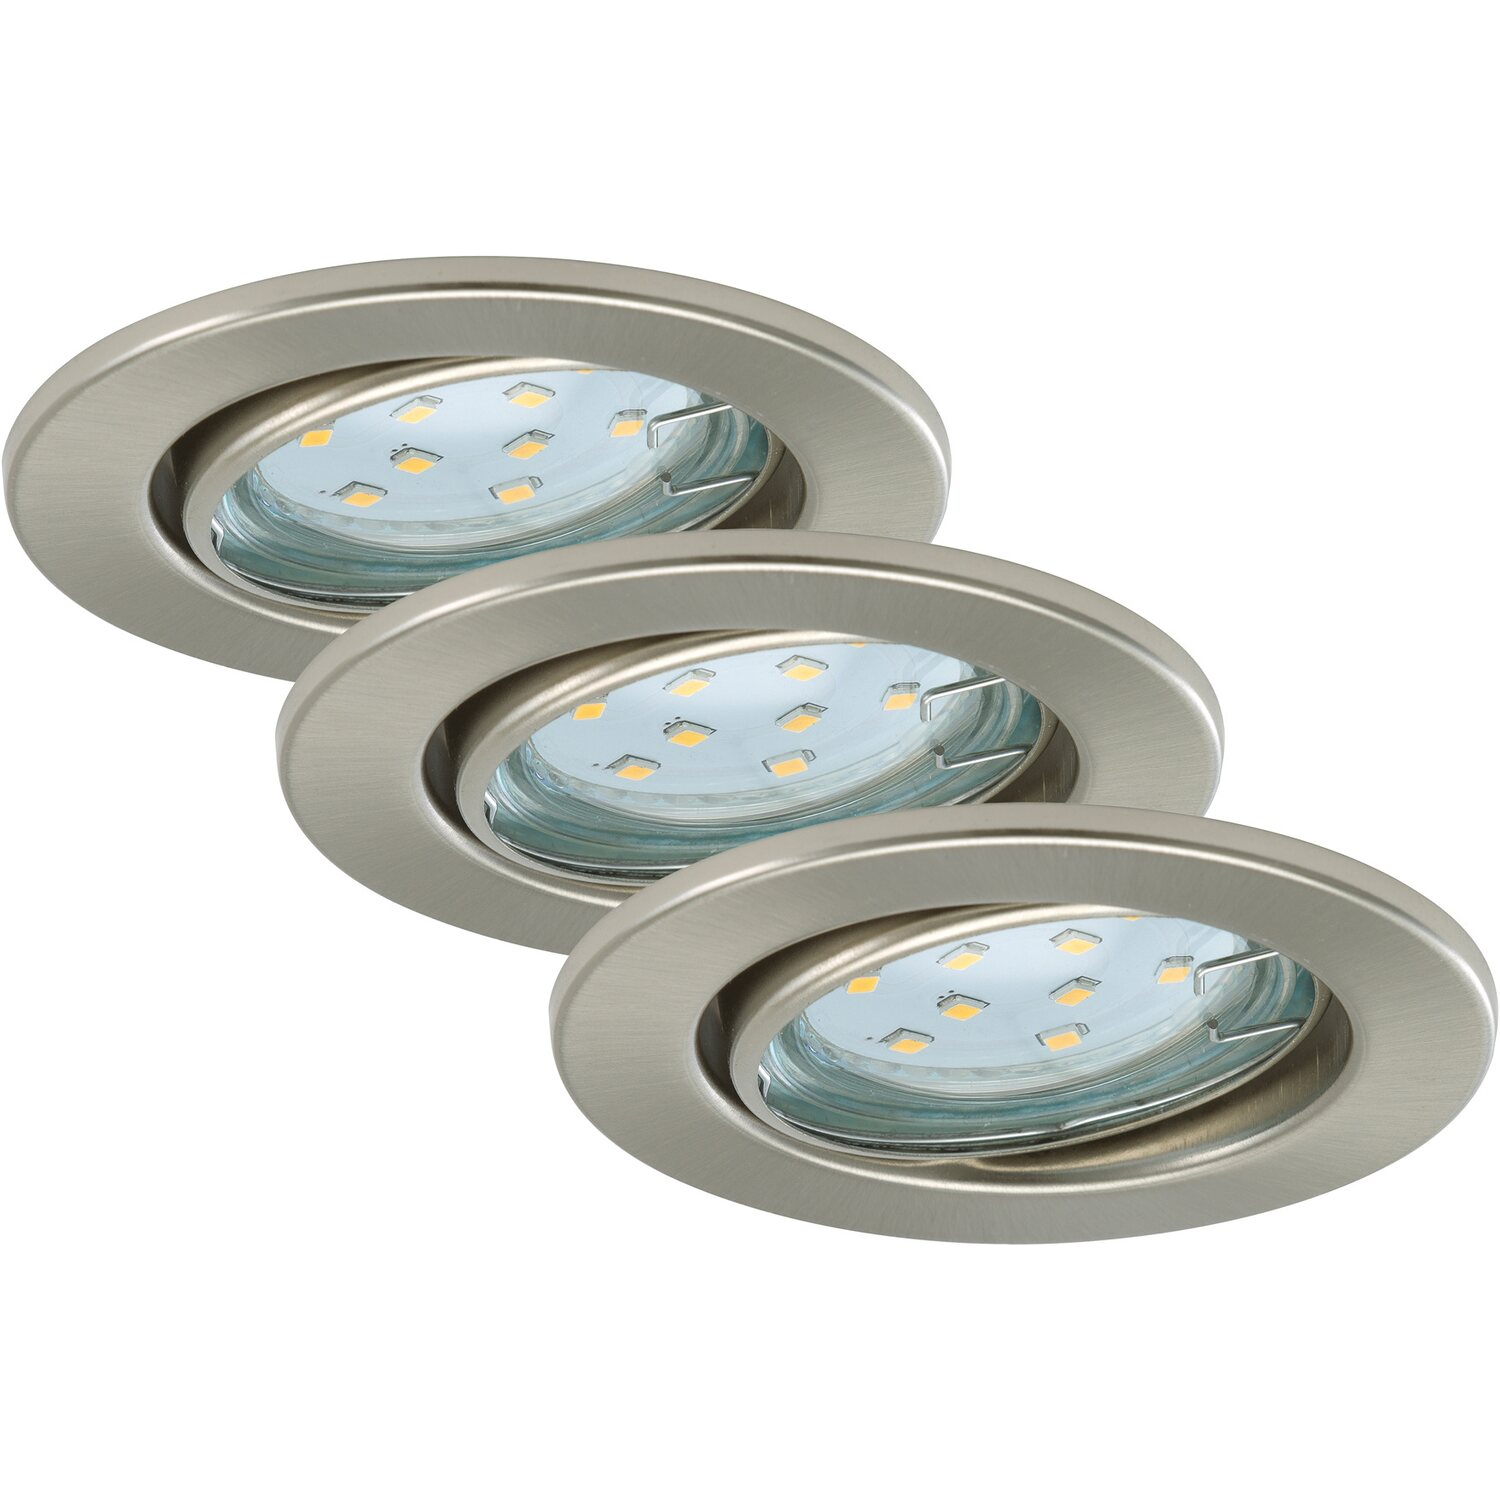 Briloner  LED-Einbauleuchten EEK: A+ 3er-Set Nickel matt